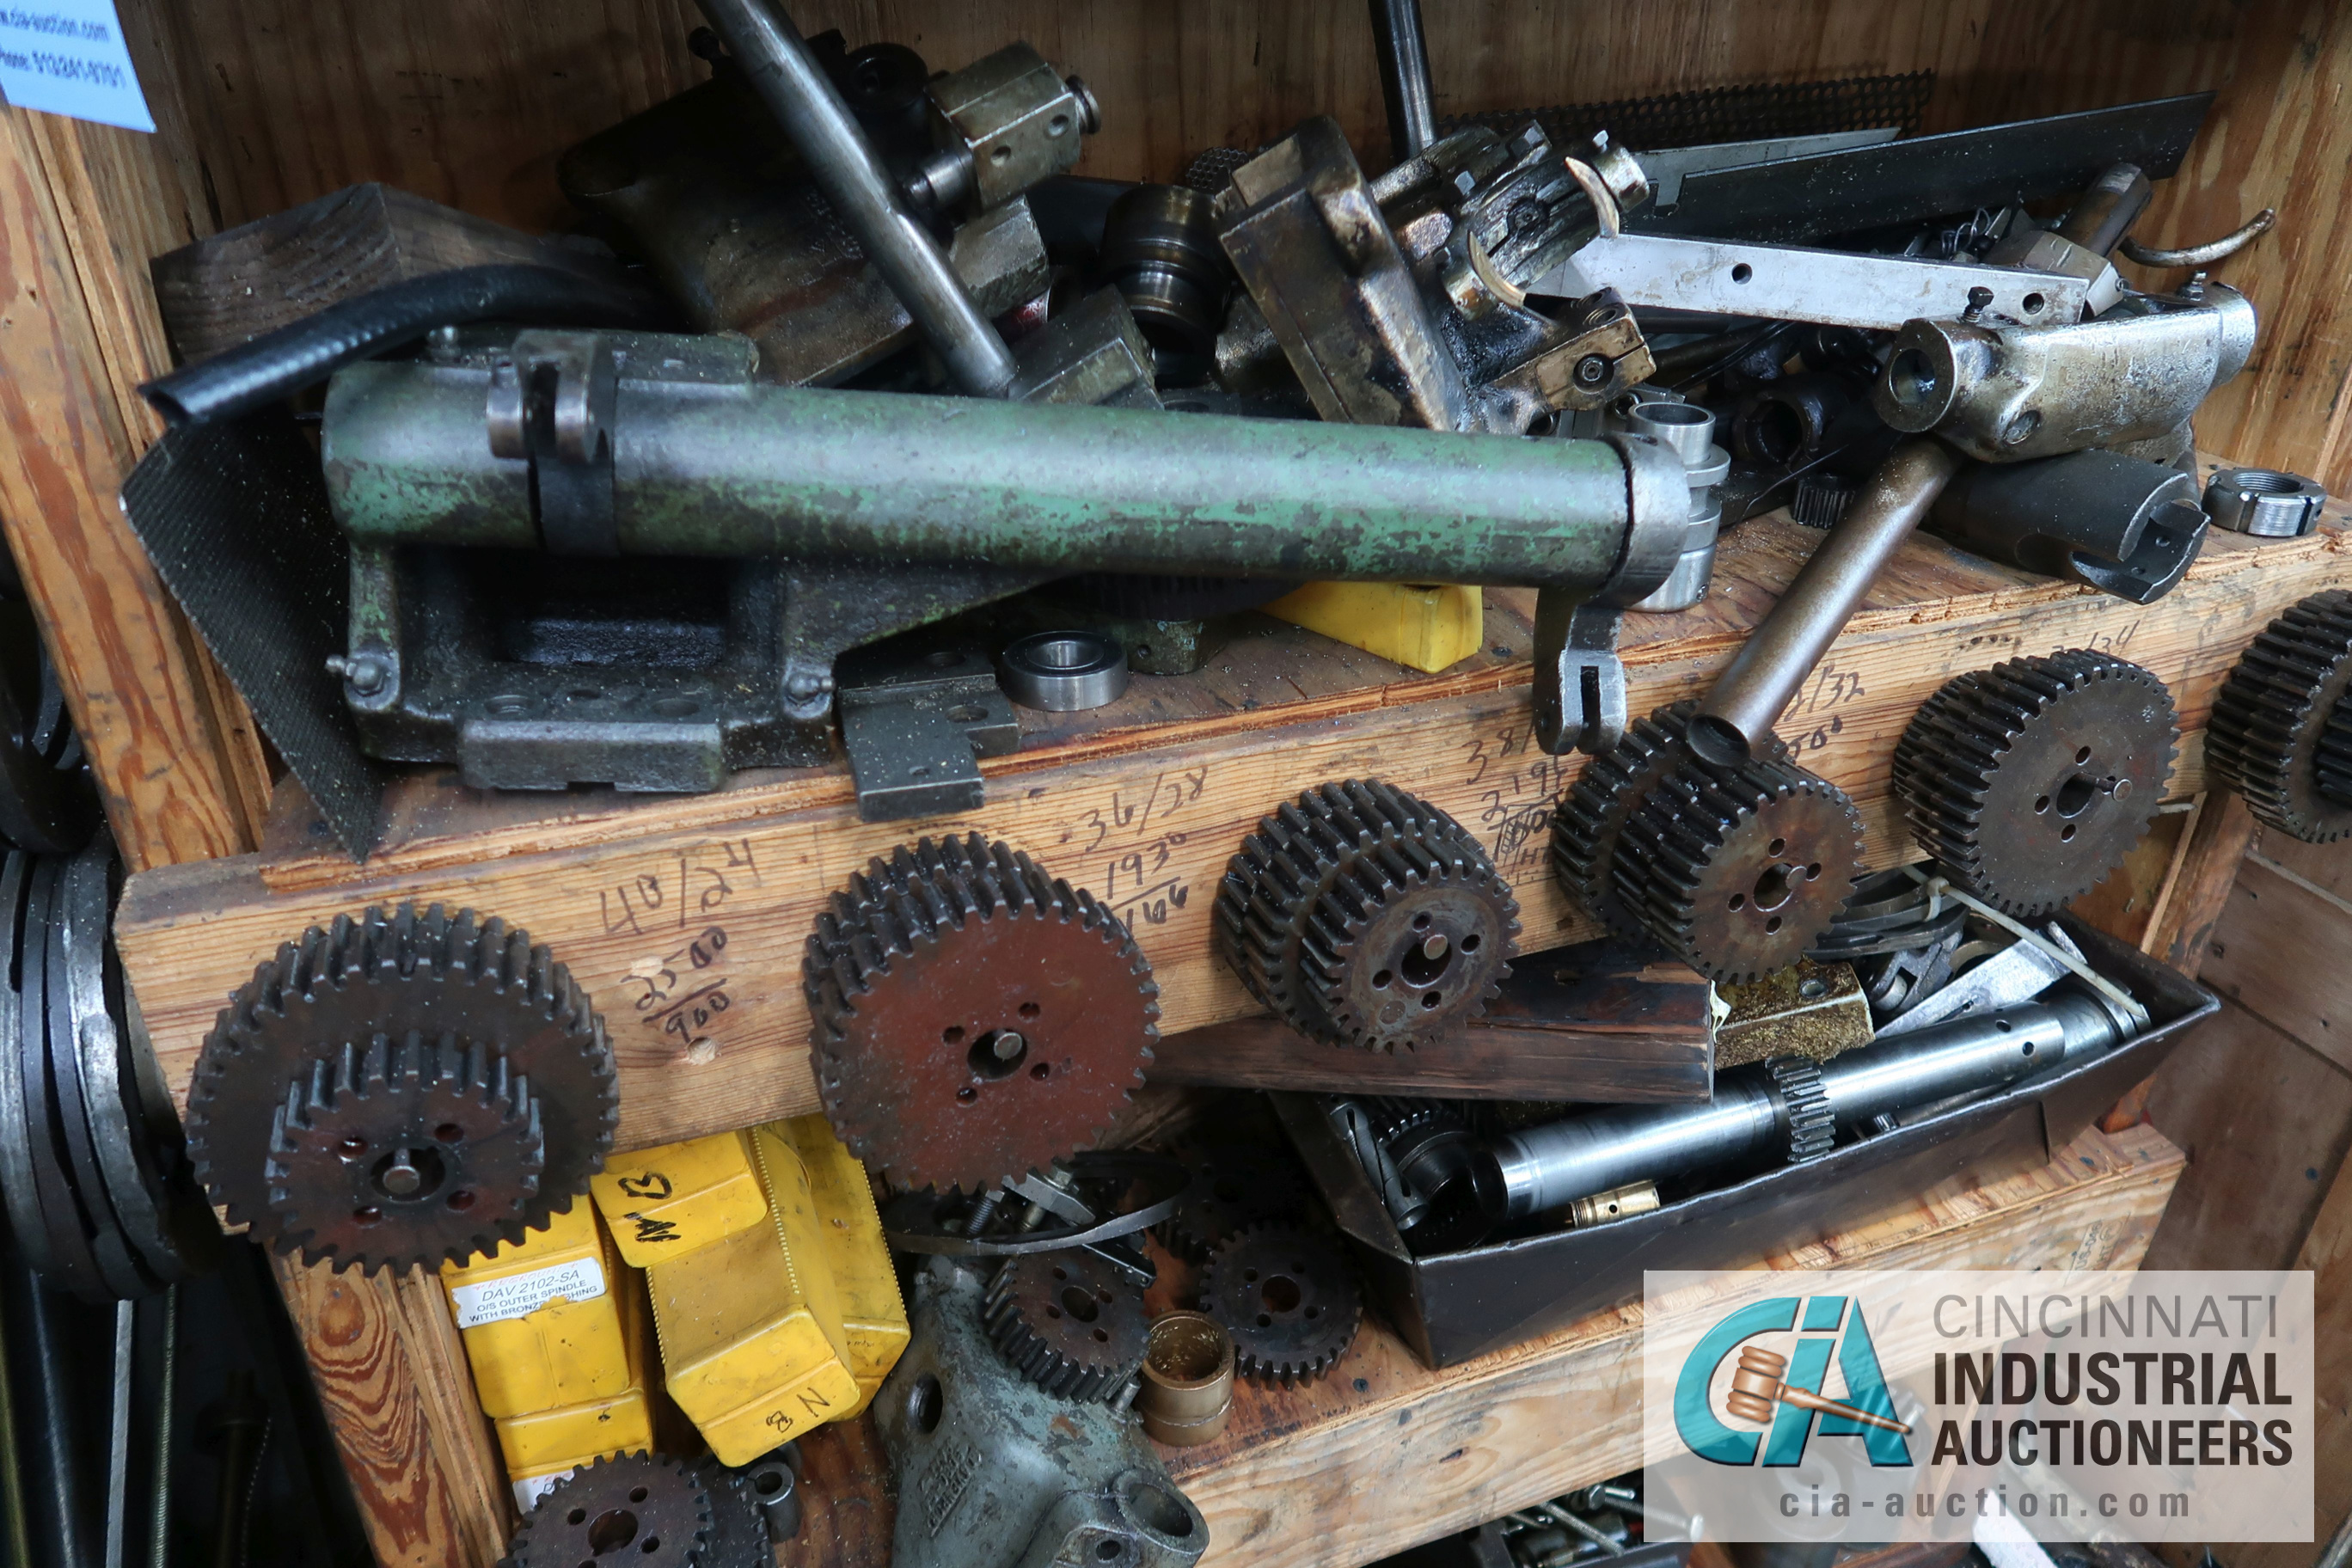 (LOT) LARGE ASSORTMENT MISCELLANEOUS DAVENPORT TOOLING, ATTACHMENTS, GEARS, CAMS AND OTHER RELATED - Image 6 of 21